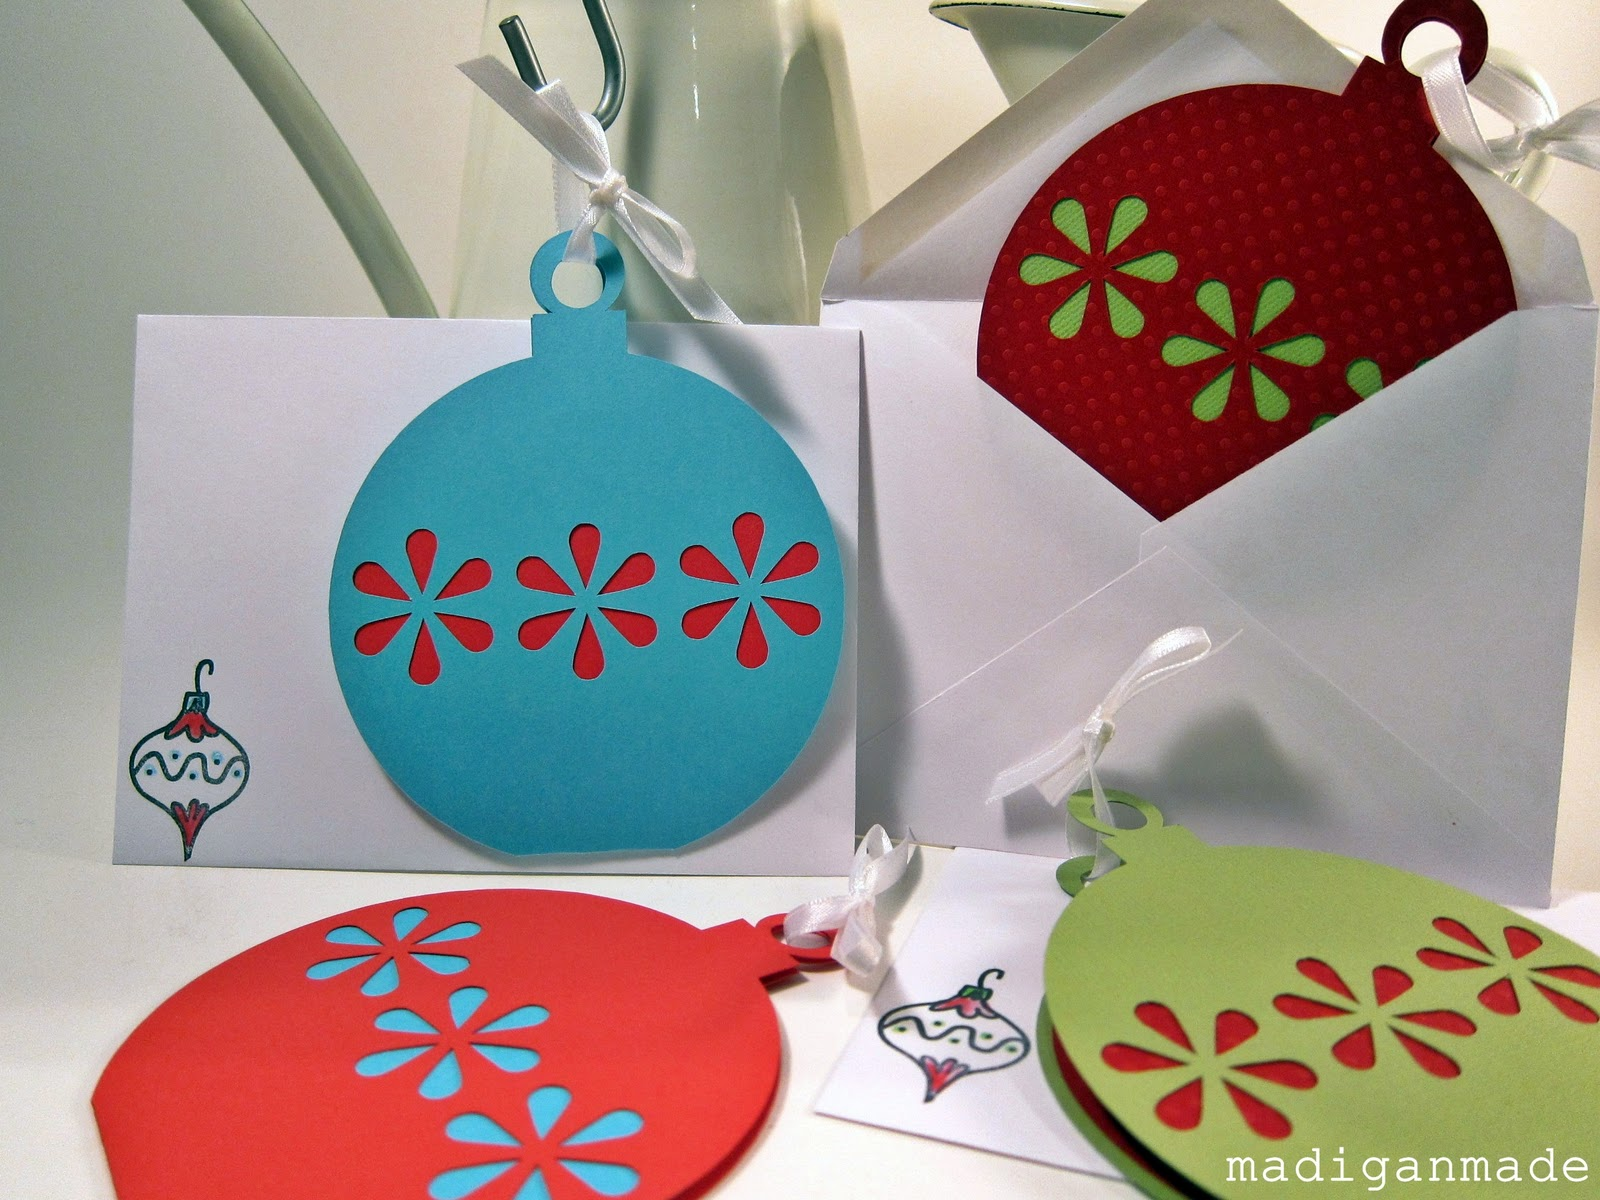 Our Christmas card: a simple die-cut ornament - Rosyscription